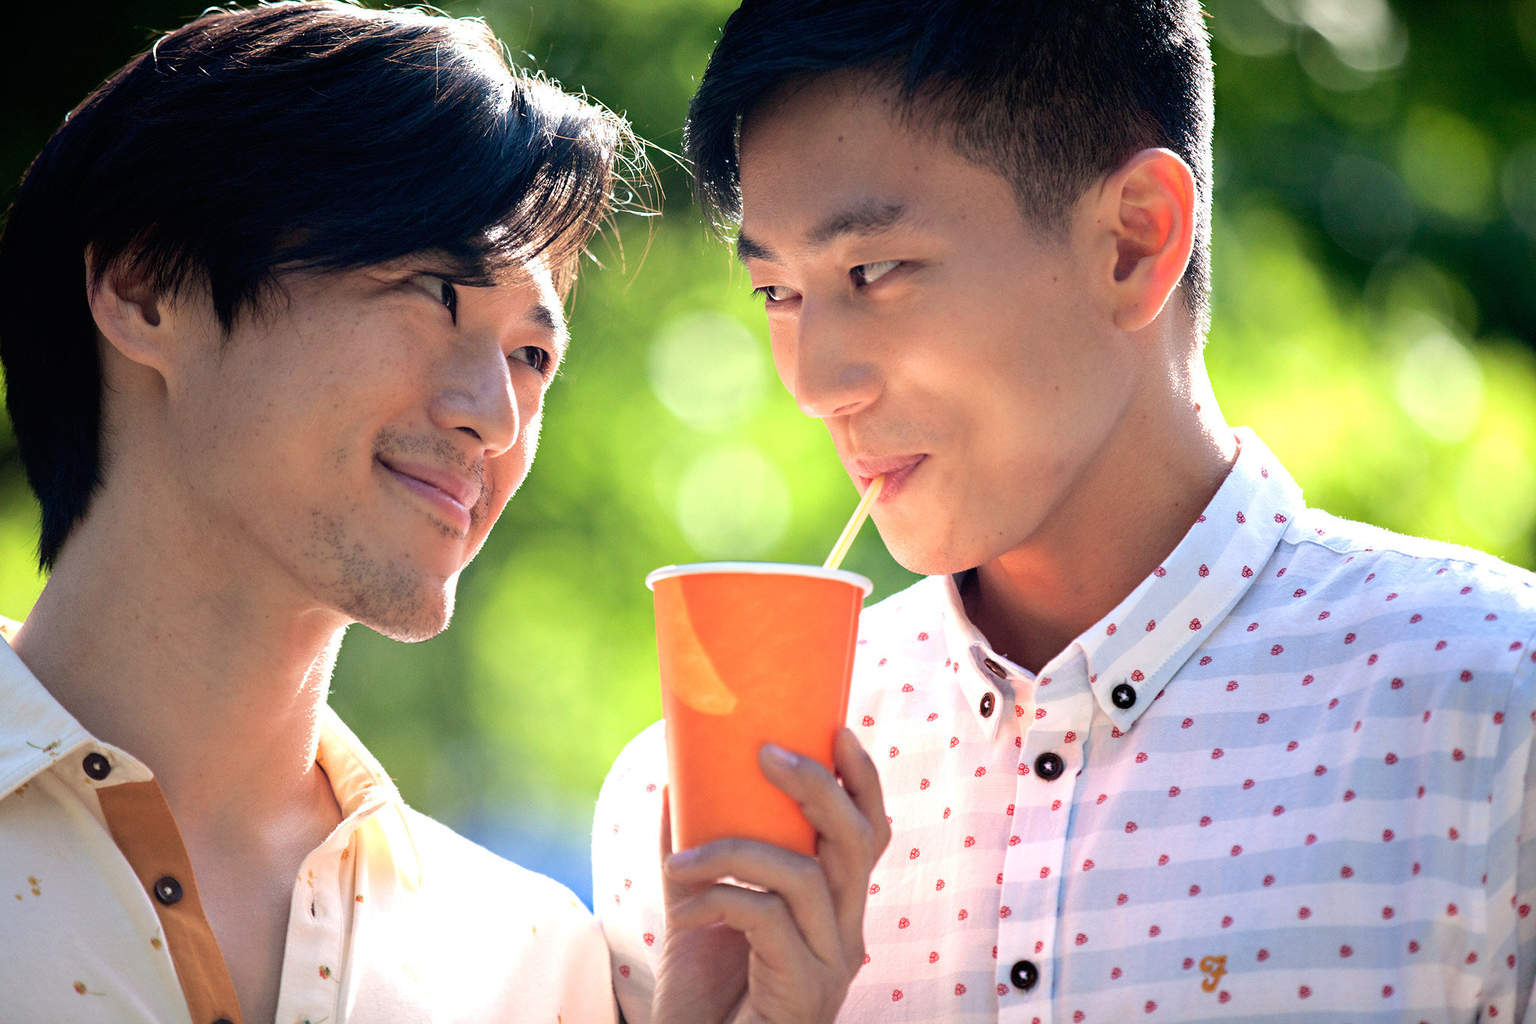 From L to R: Ning (James Chen) and Ryan (Jake Choi) with orange juice in Ray Yeung's FRONT COVER